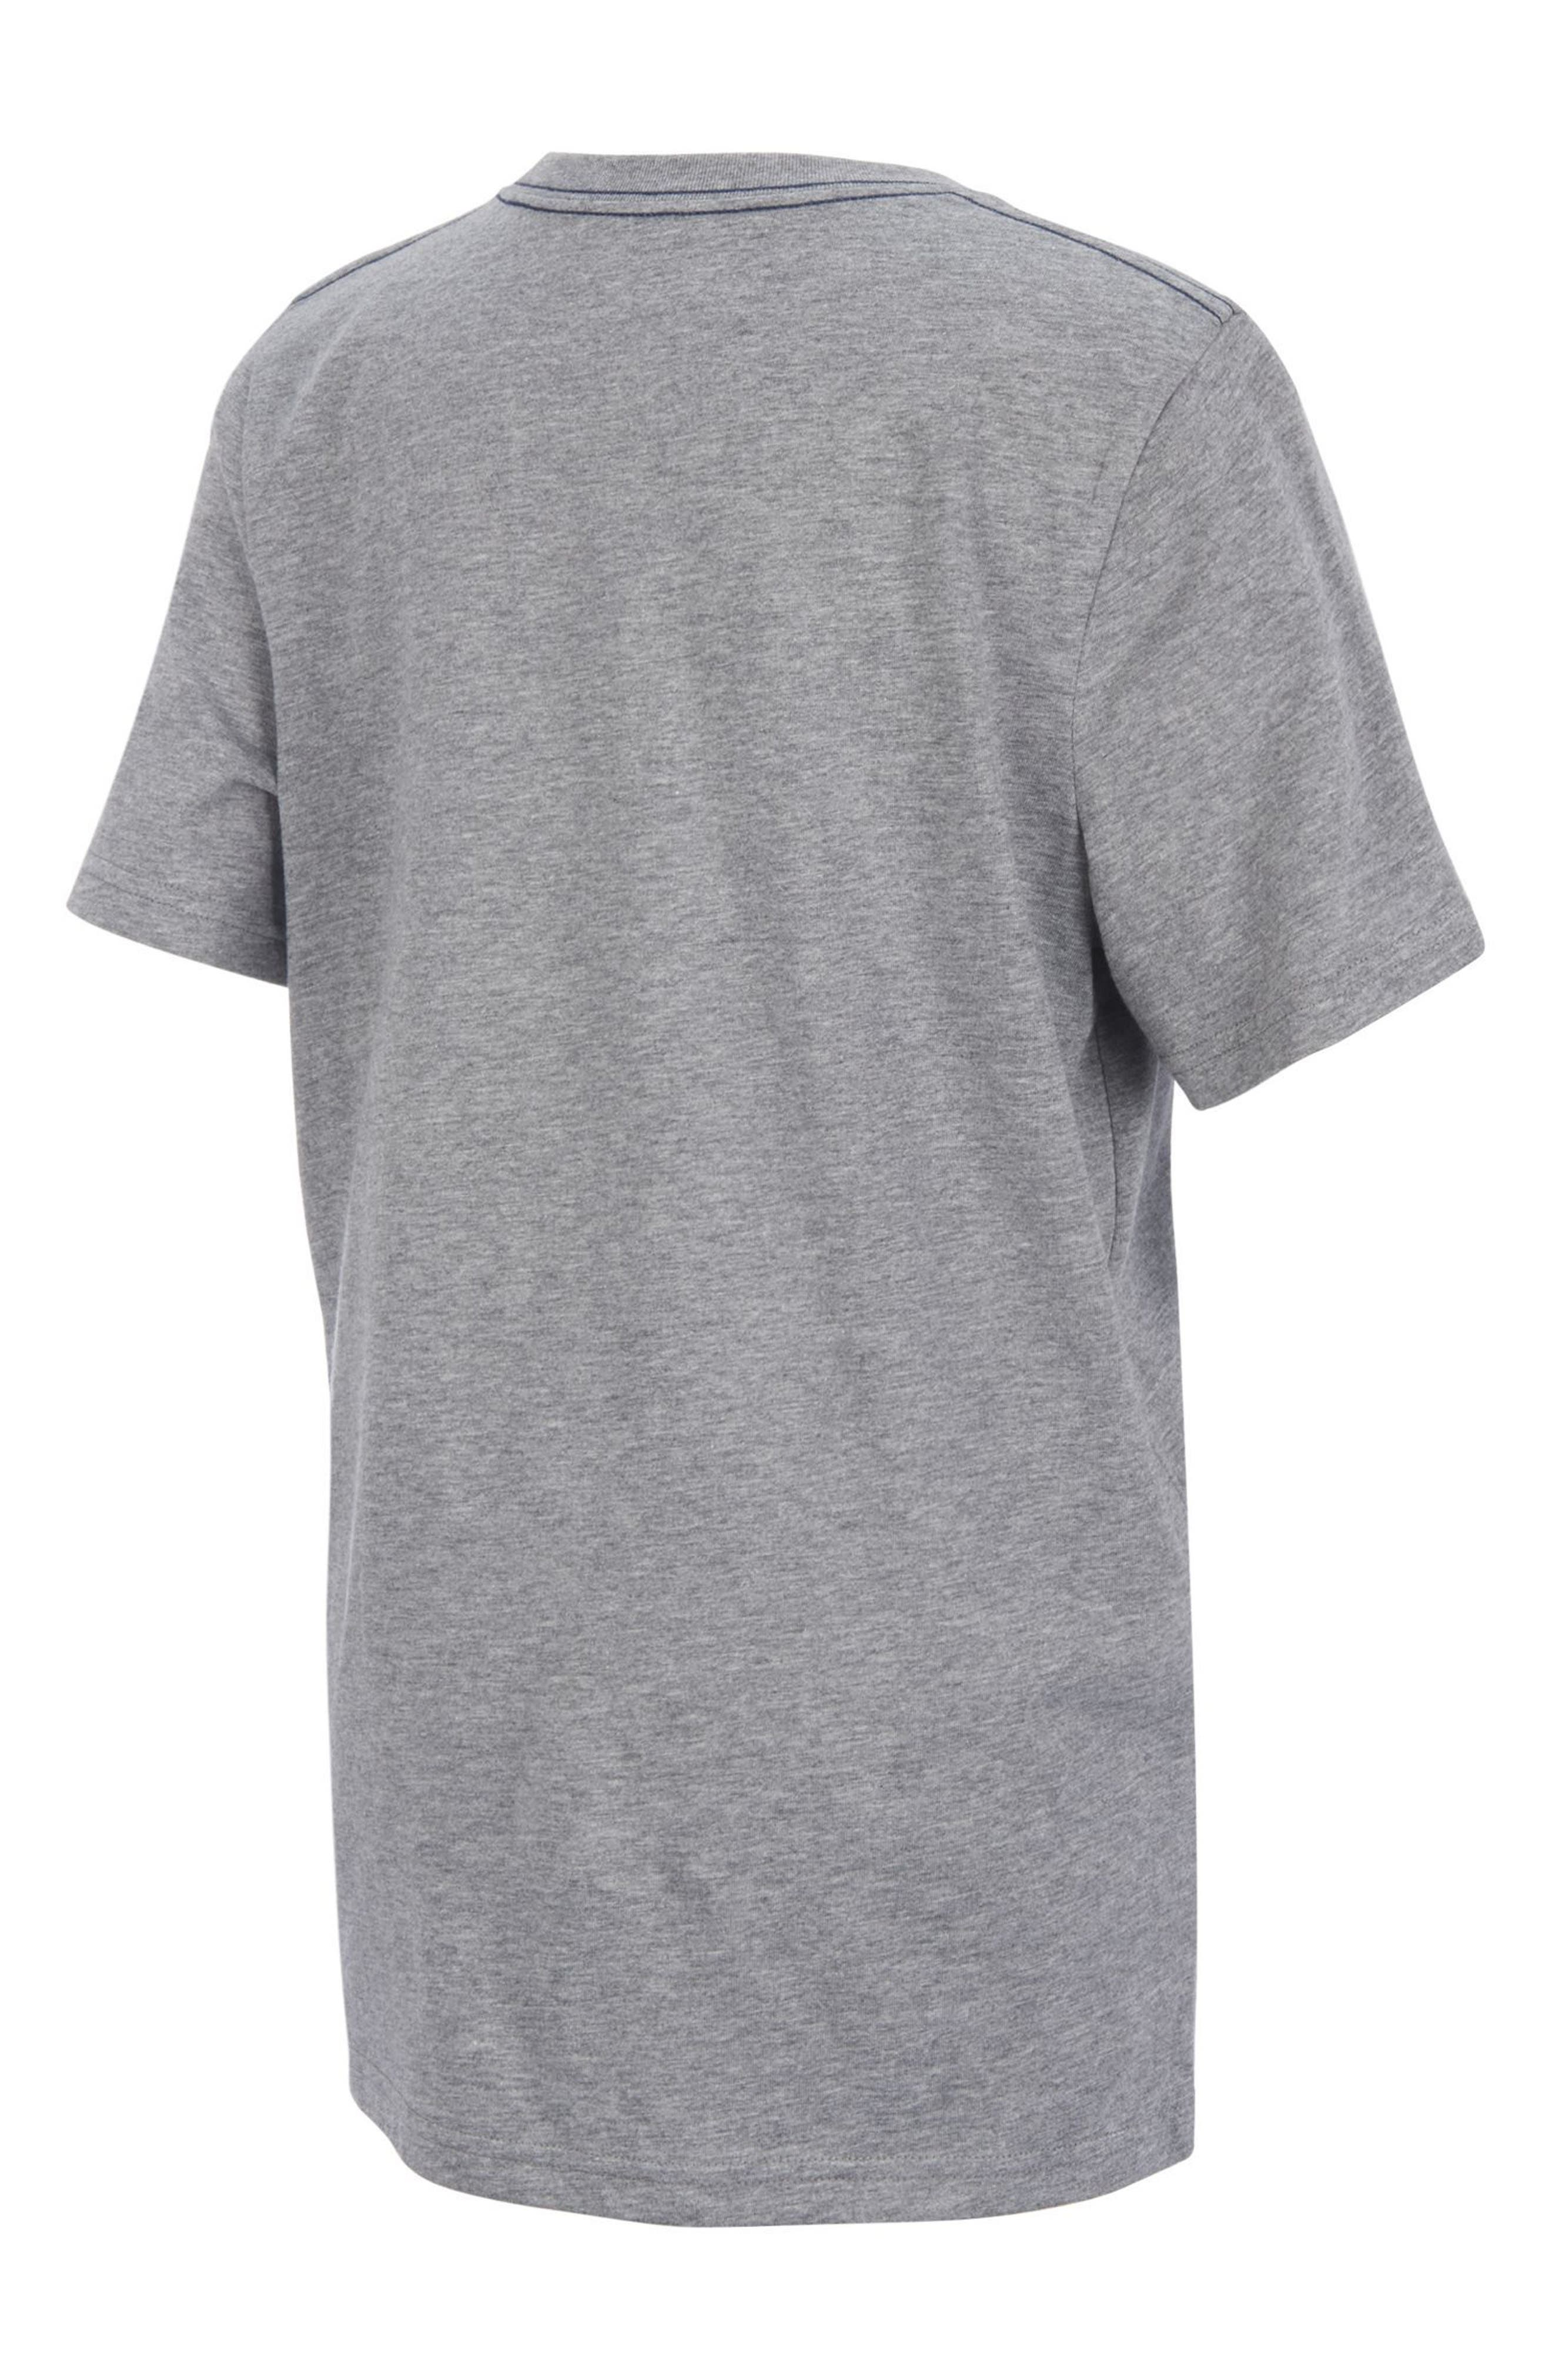 Supreme Speed Linear Graphic T-Shirt,                             Alternate thumbnail 2, color,                             027